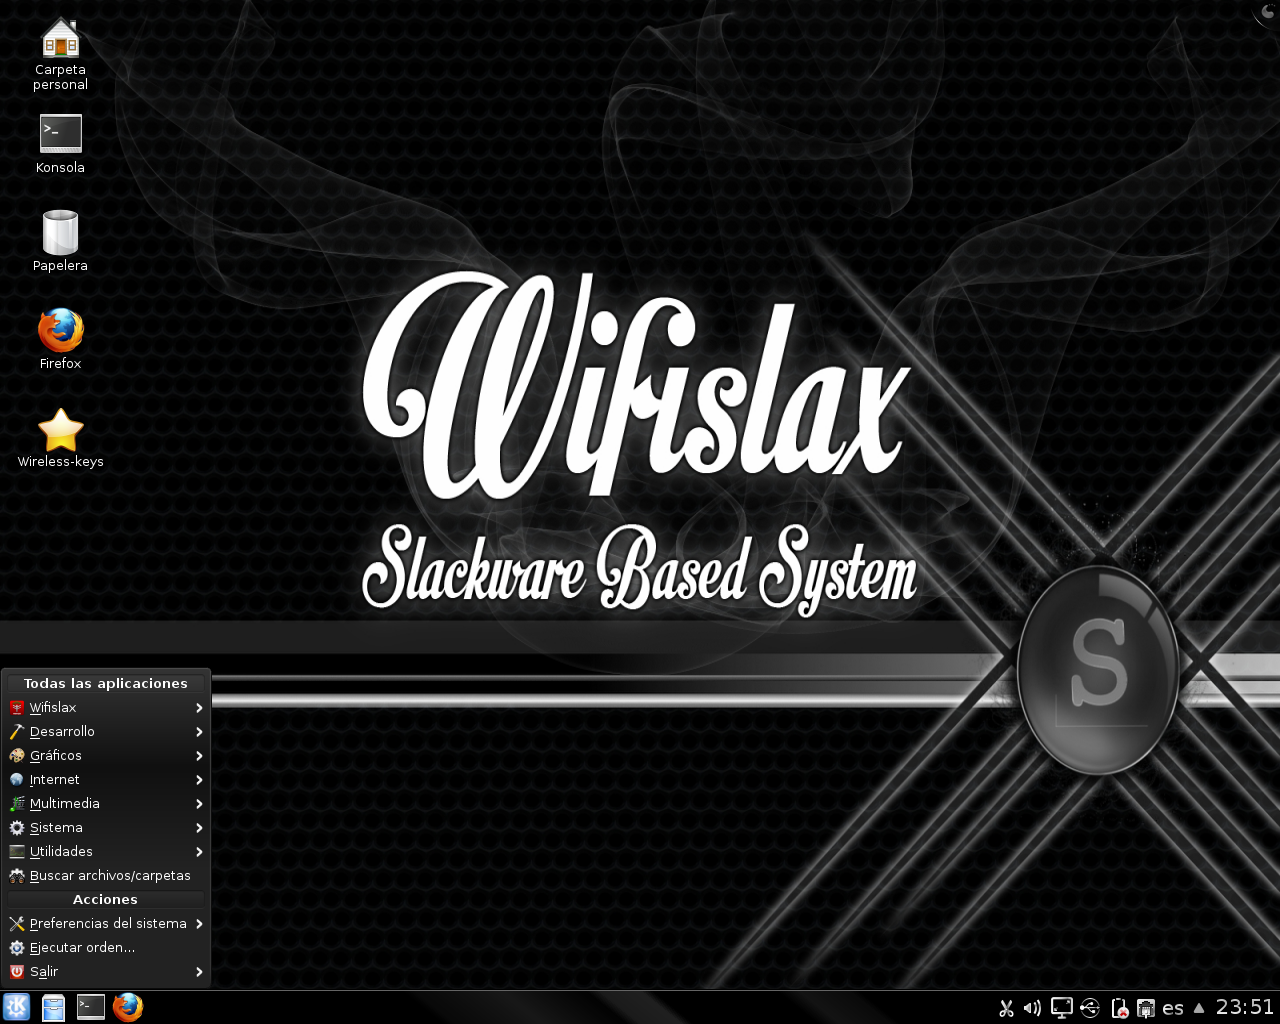 How to: download and install wifislax (32,64bit) youtube.